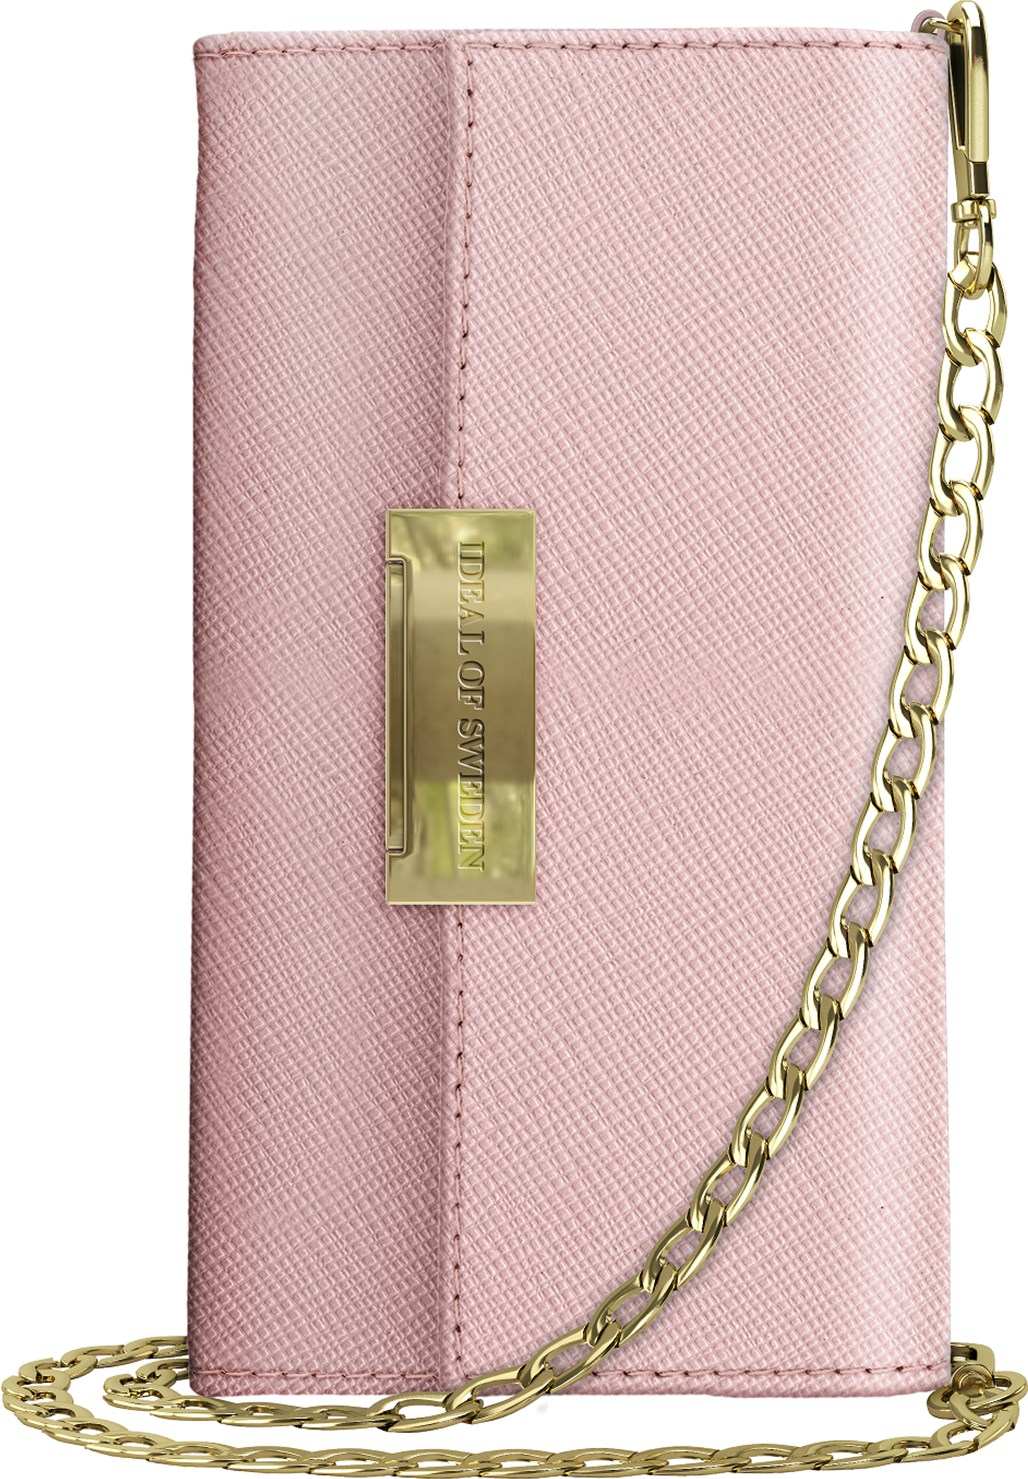 iDeal of Sweden Ideal Kensington Cross Body Clutch Iphone Xr Pink